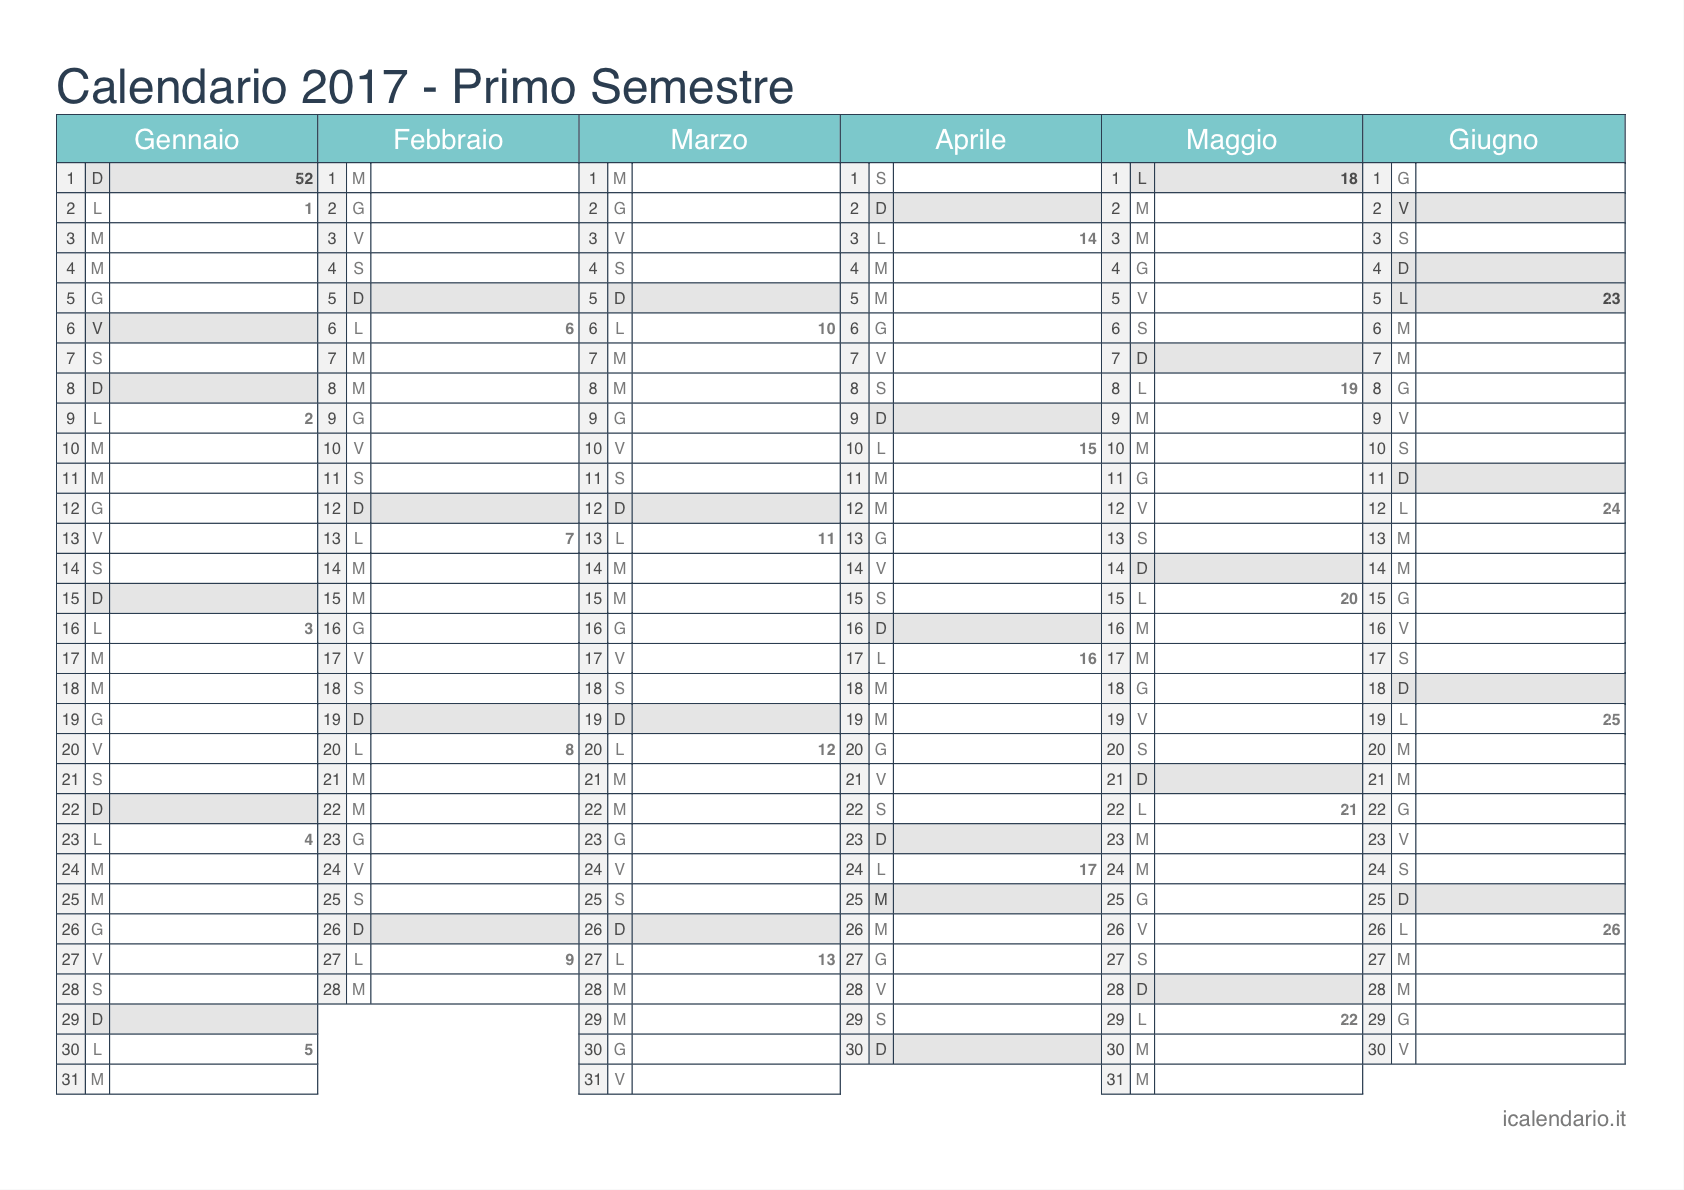 Preferenza Calendario 2017 da stampare - iCalendario.it ZN06